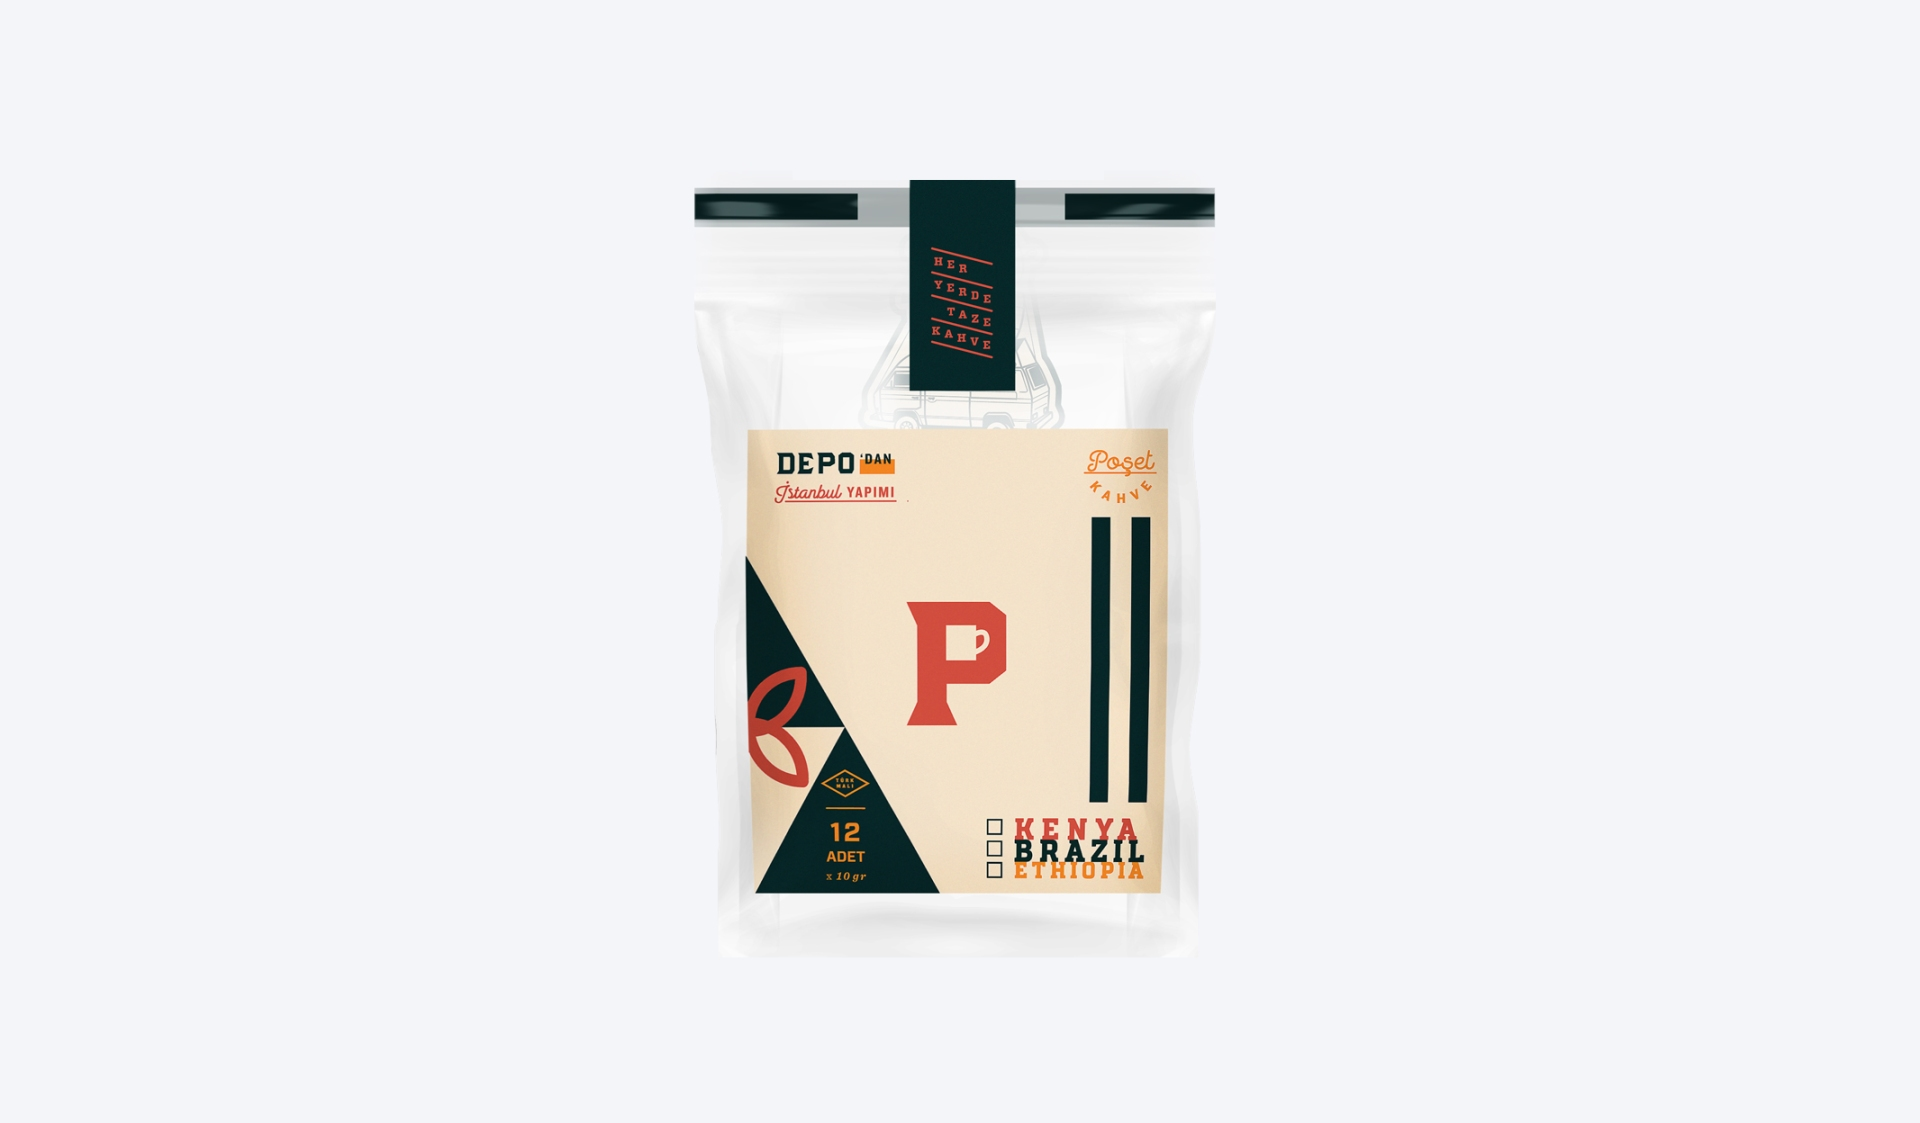 zeki-michael-depo-logo-poset-kahve-logo-identity-packaging-sallama-kahve-design-illustration-exploration-all-logo-transparent.JPG